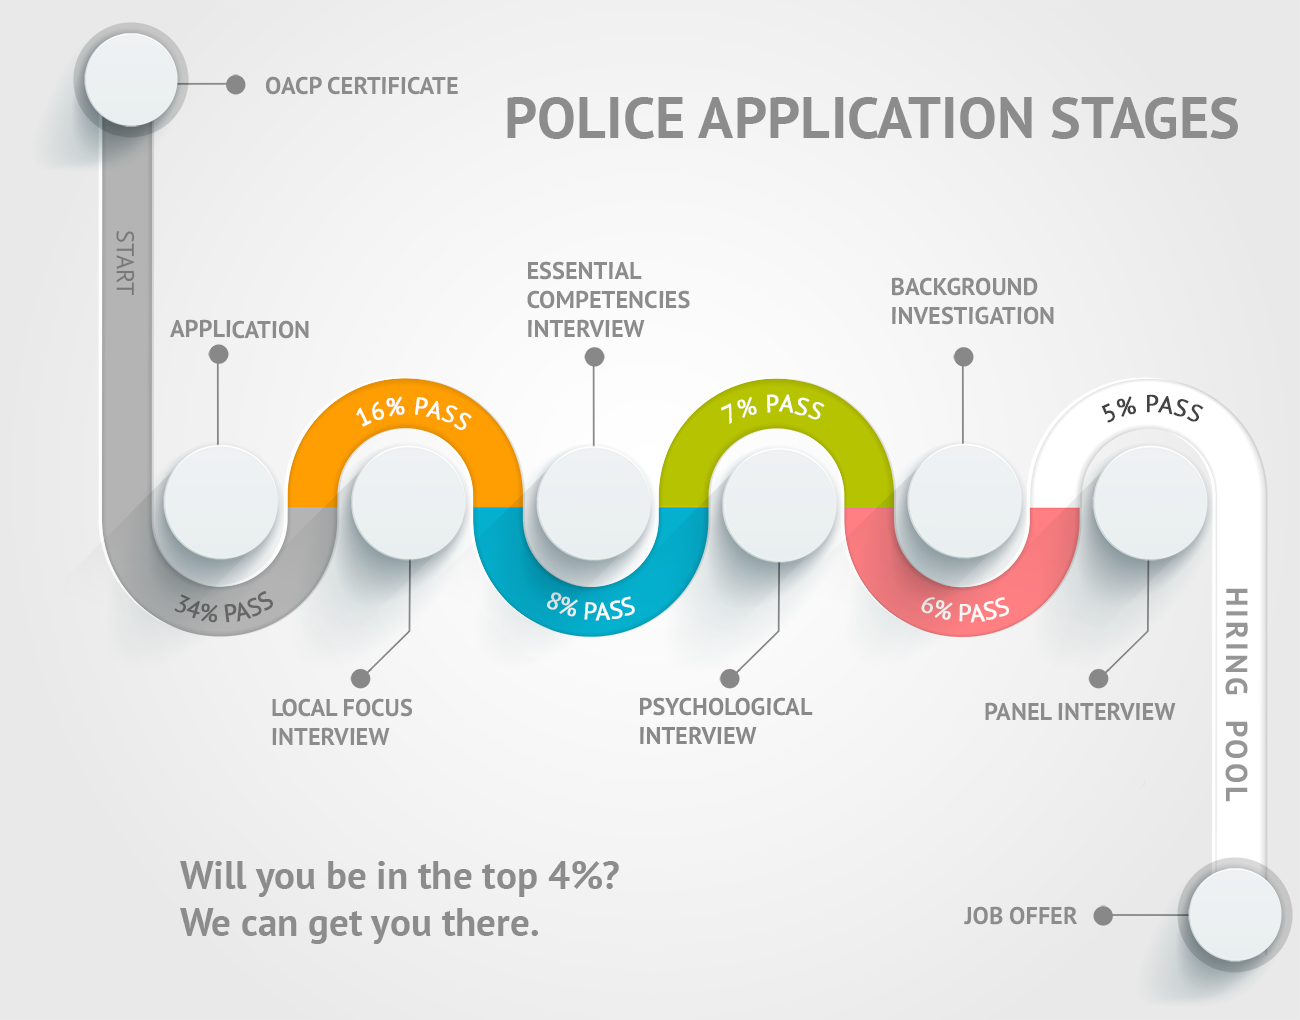 OACP certificate of results to getting hired as a road map